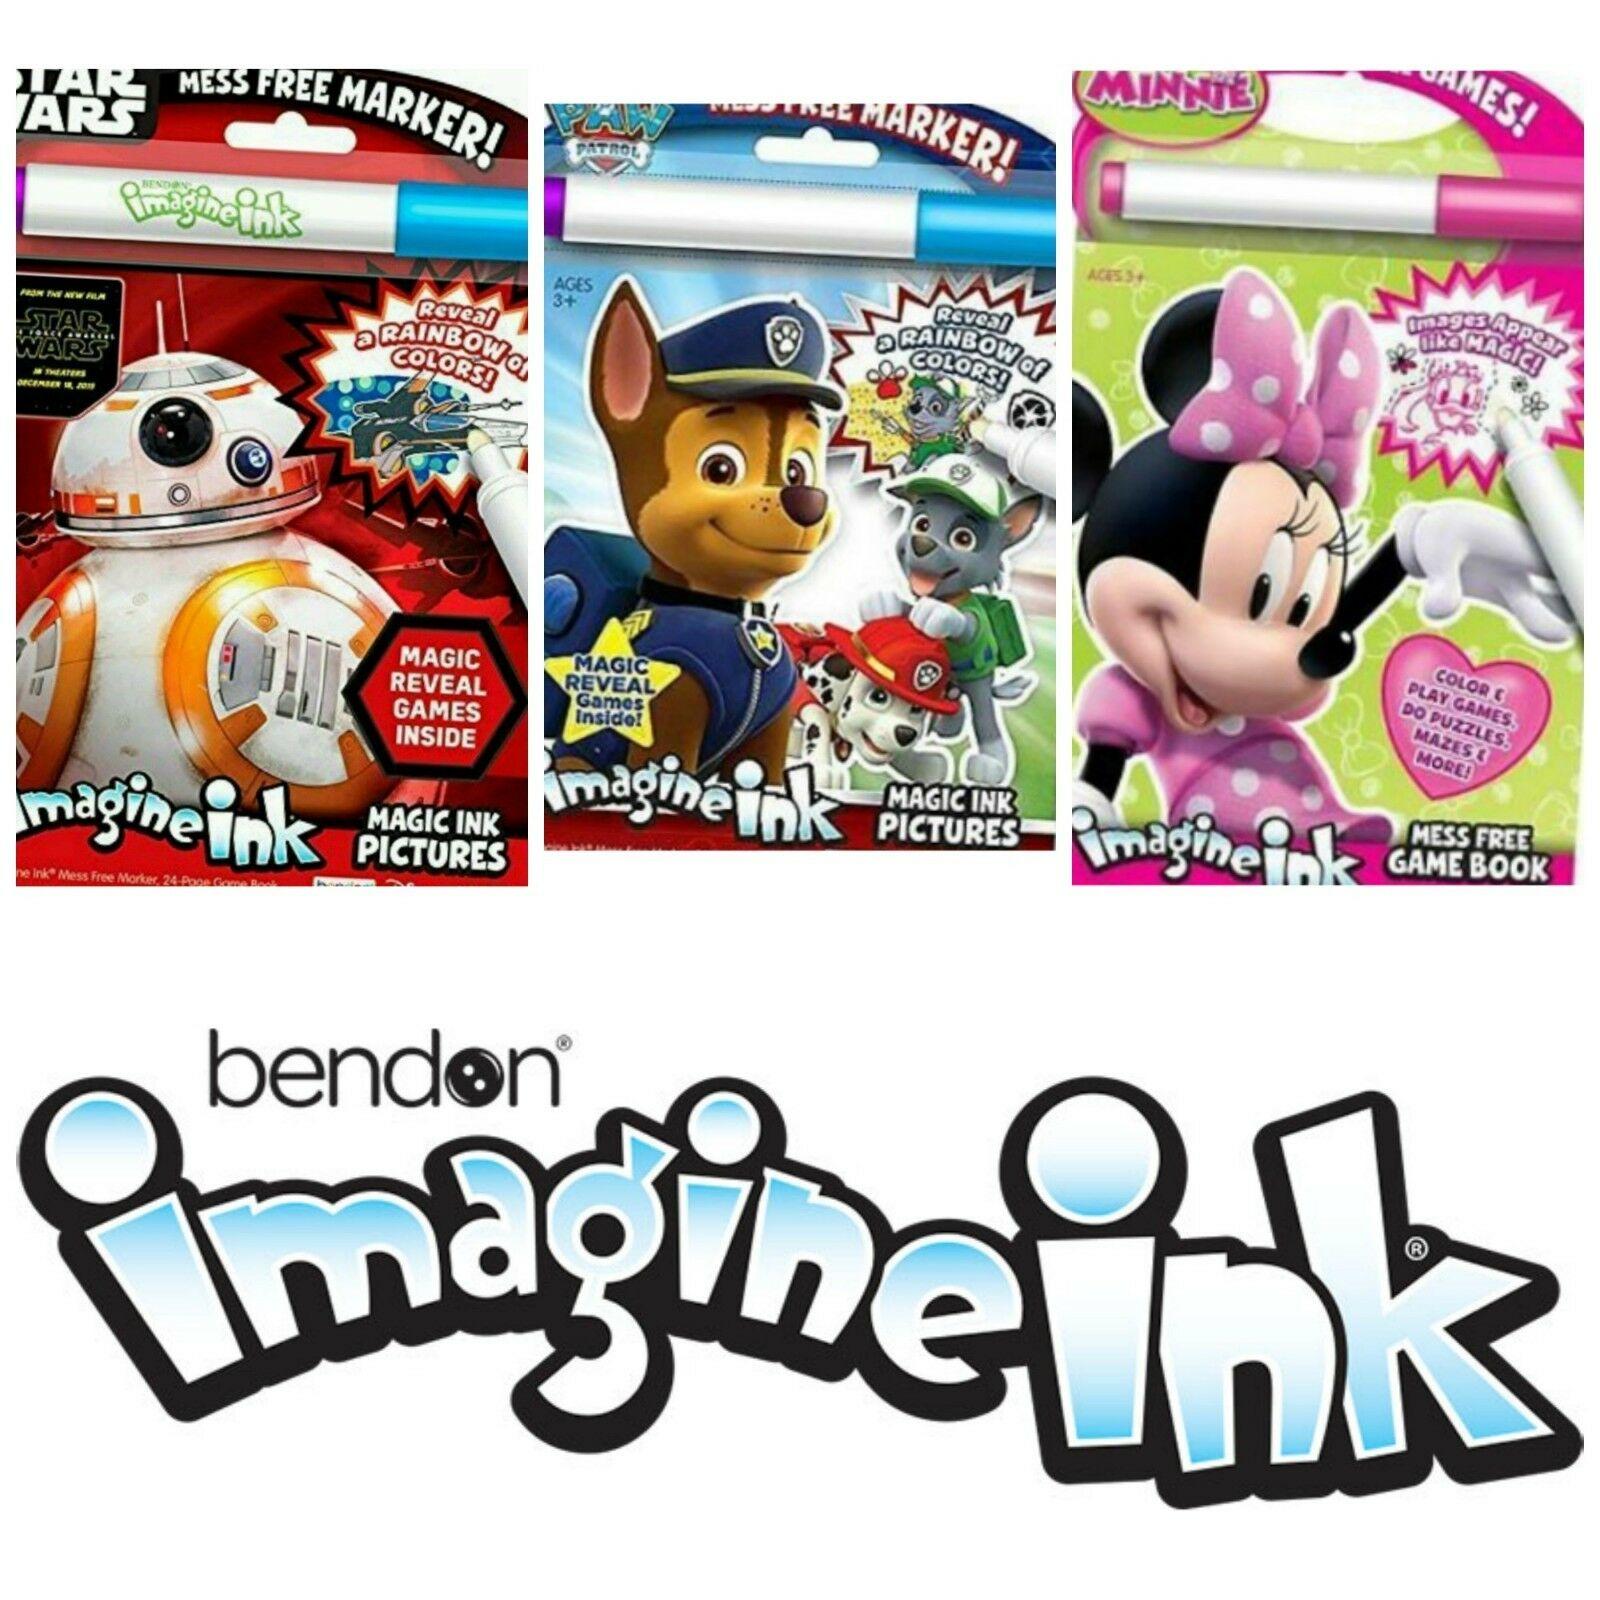 Bendon Imagine Ink Mess Free Game Book Travel